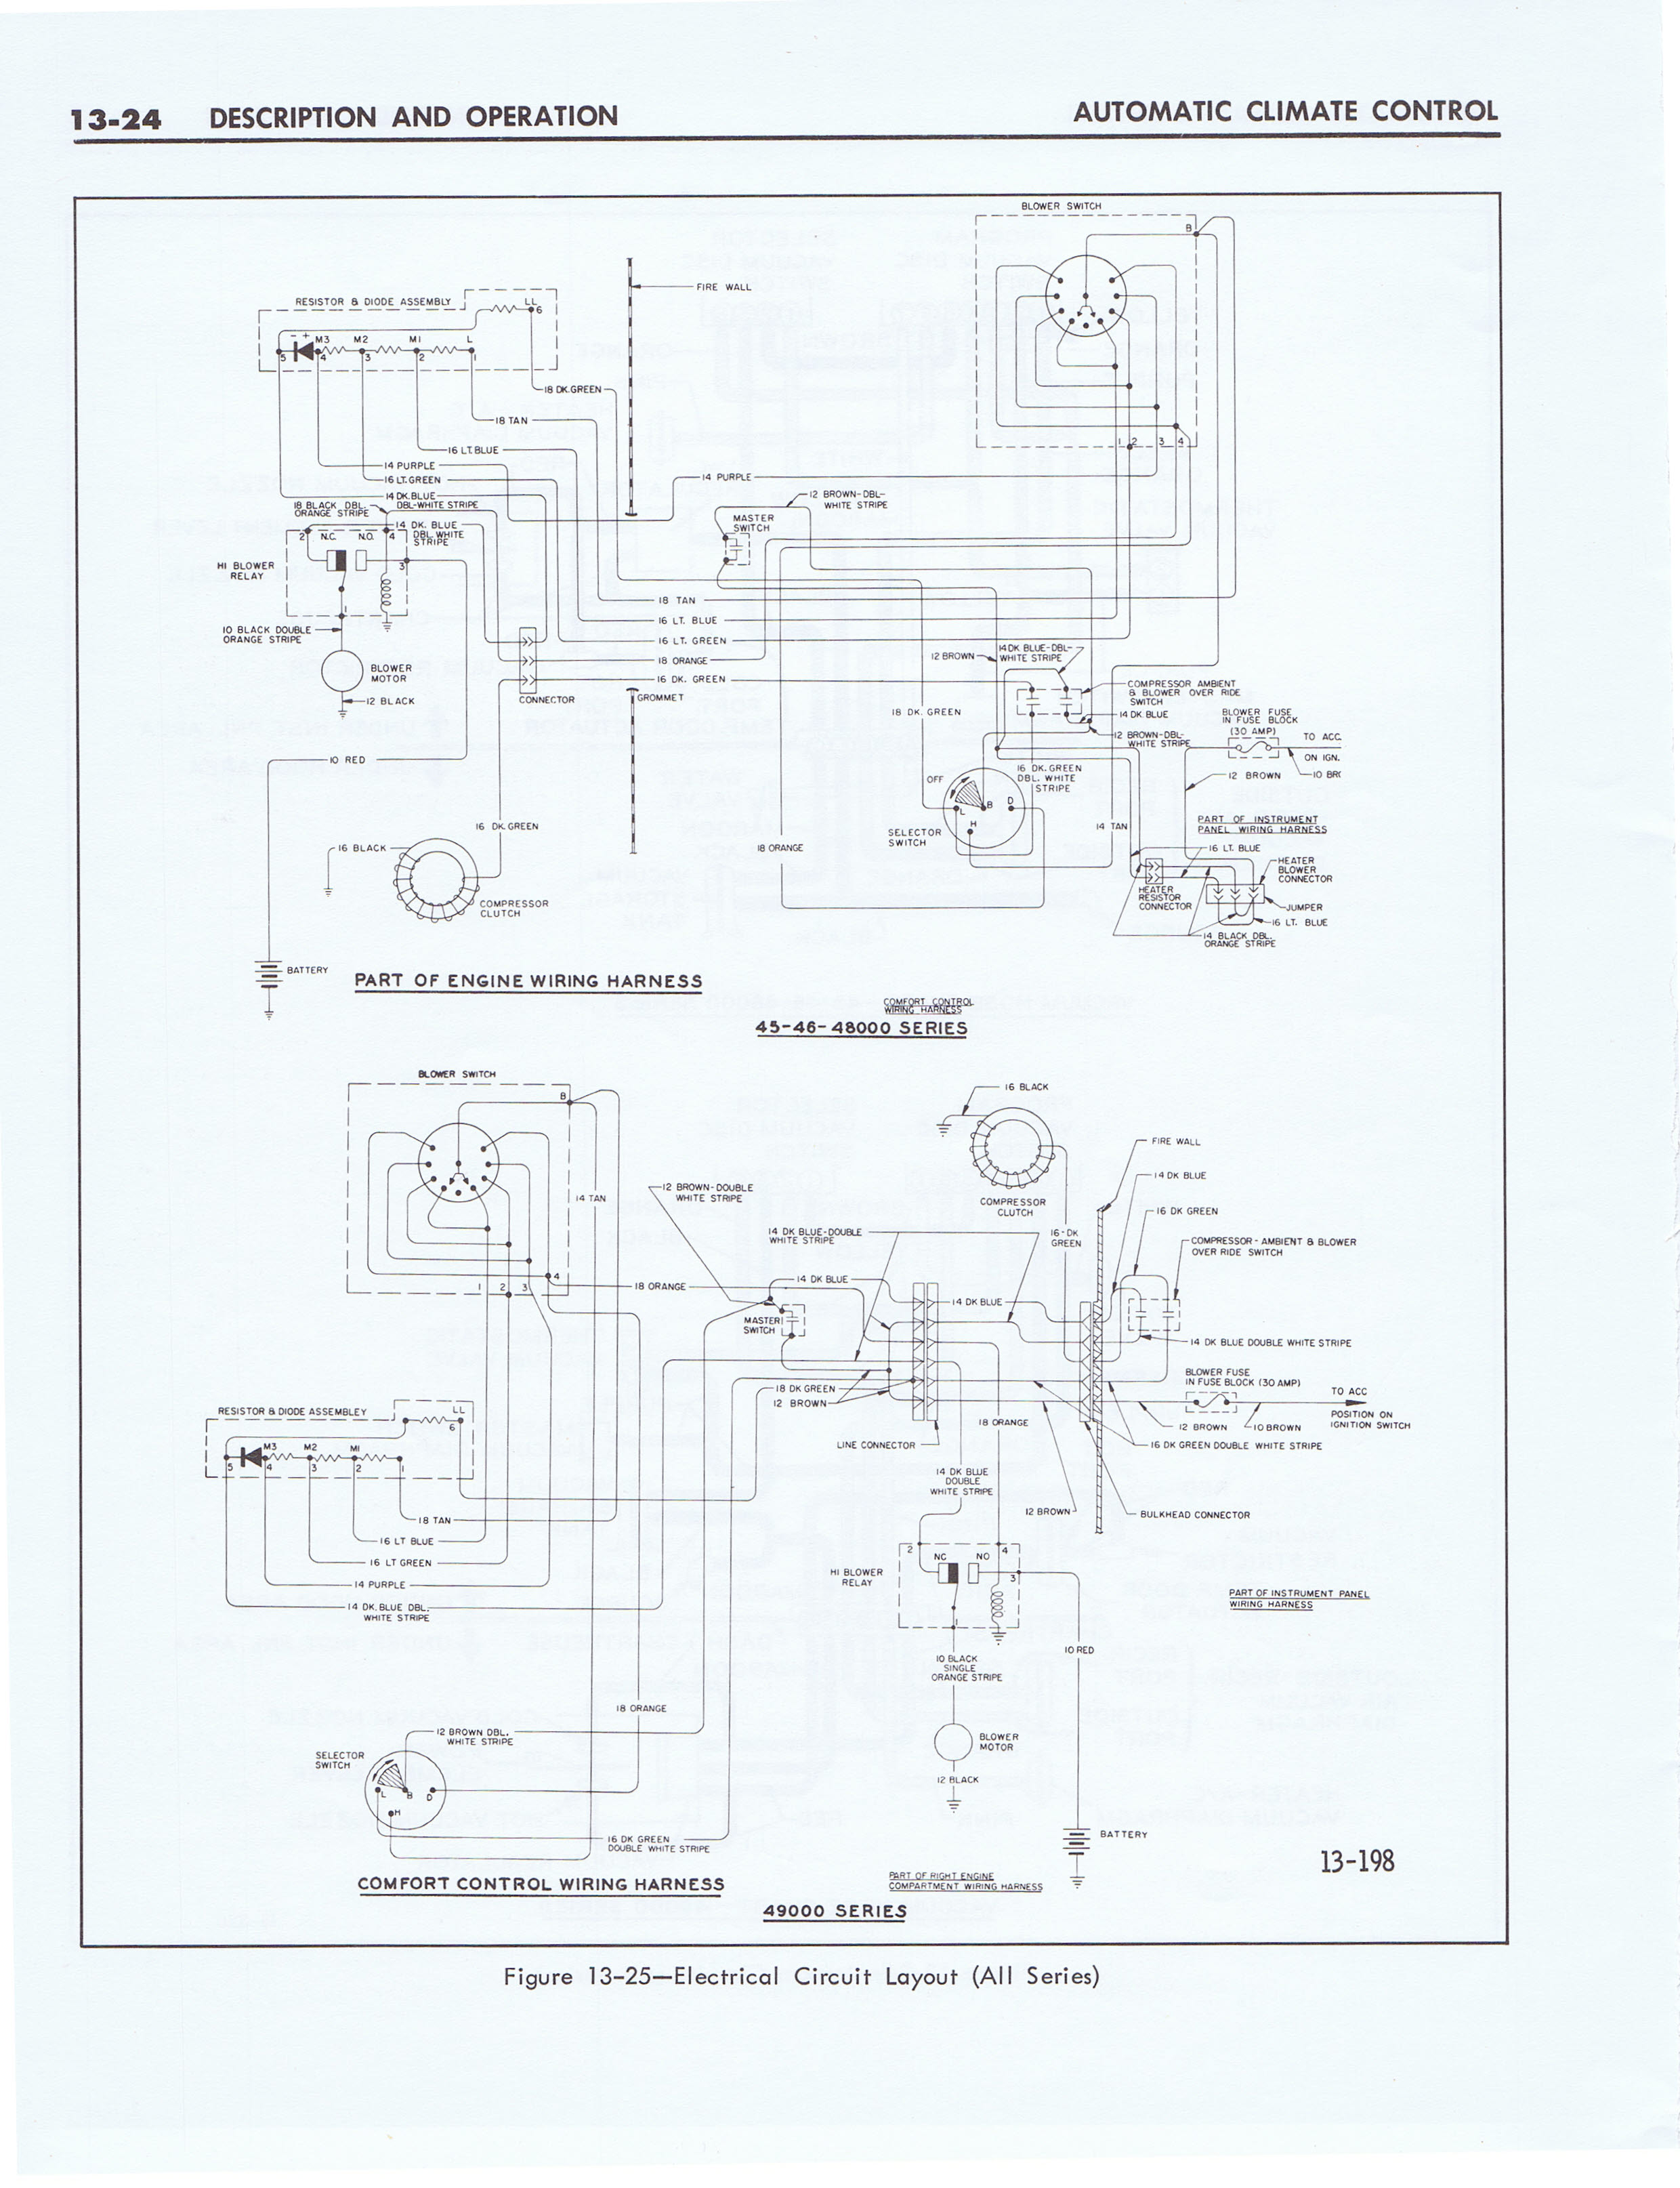 1967 Buick Automatic Climate Control (Second Type) page 24